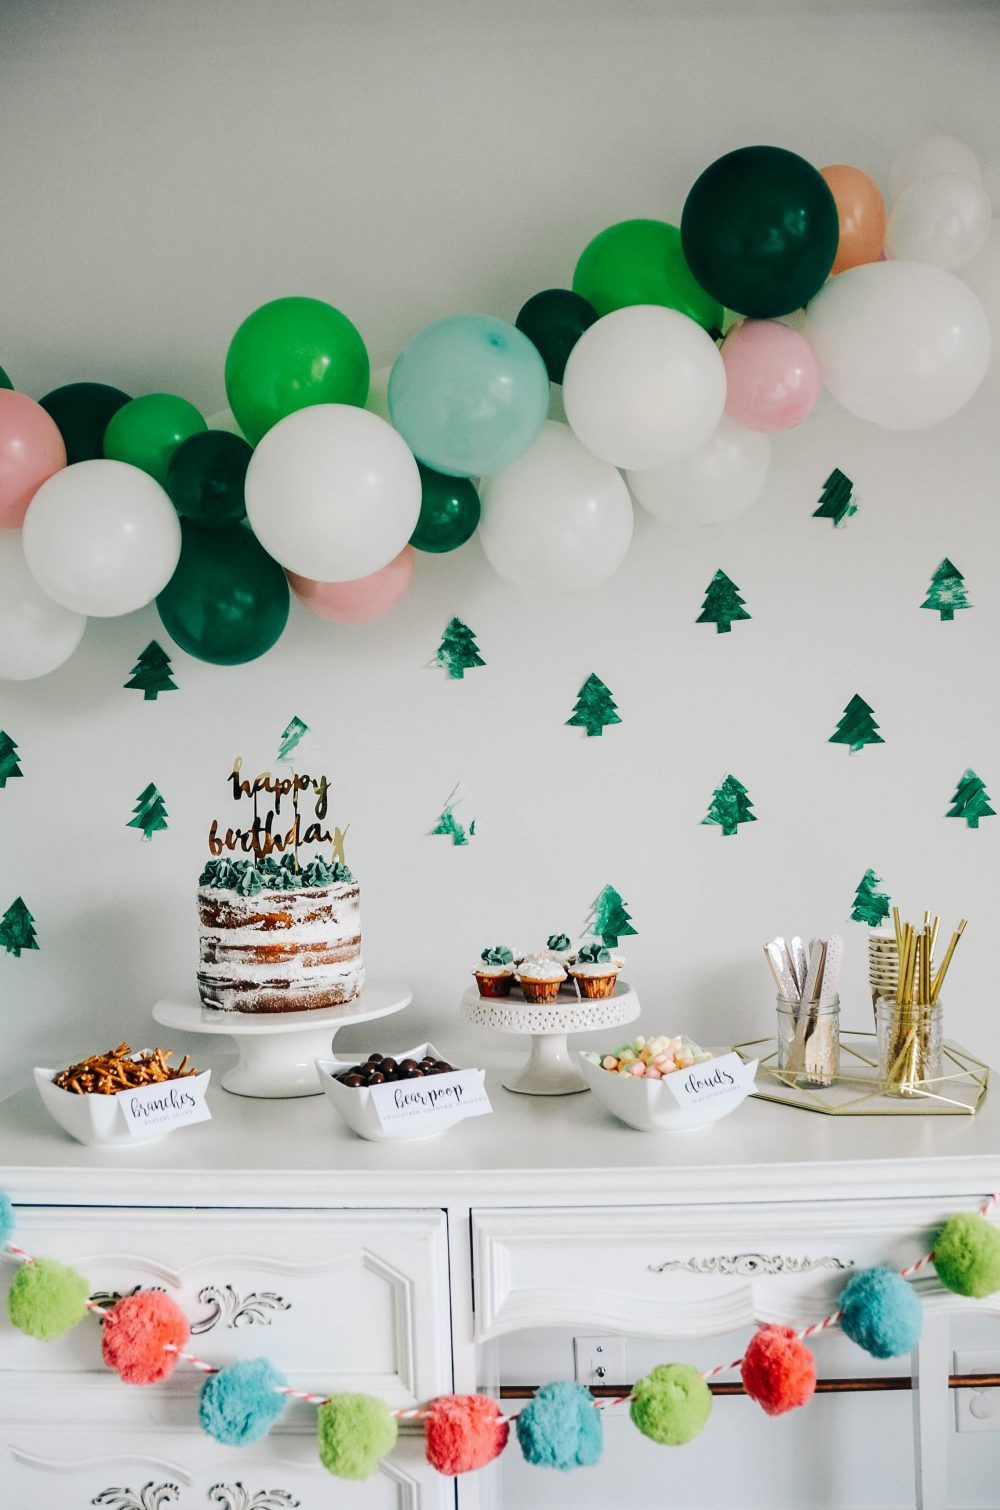 Woodland Four,est (Forest) Themed Birthday Party Decor